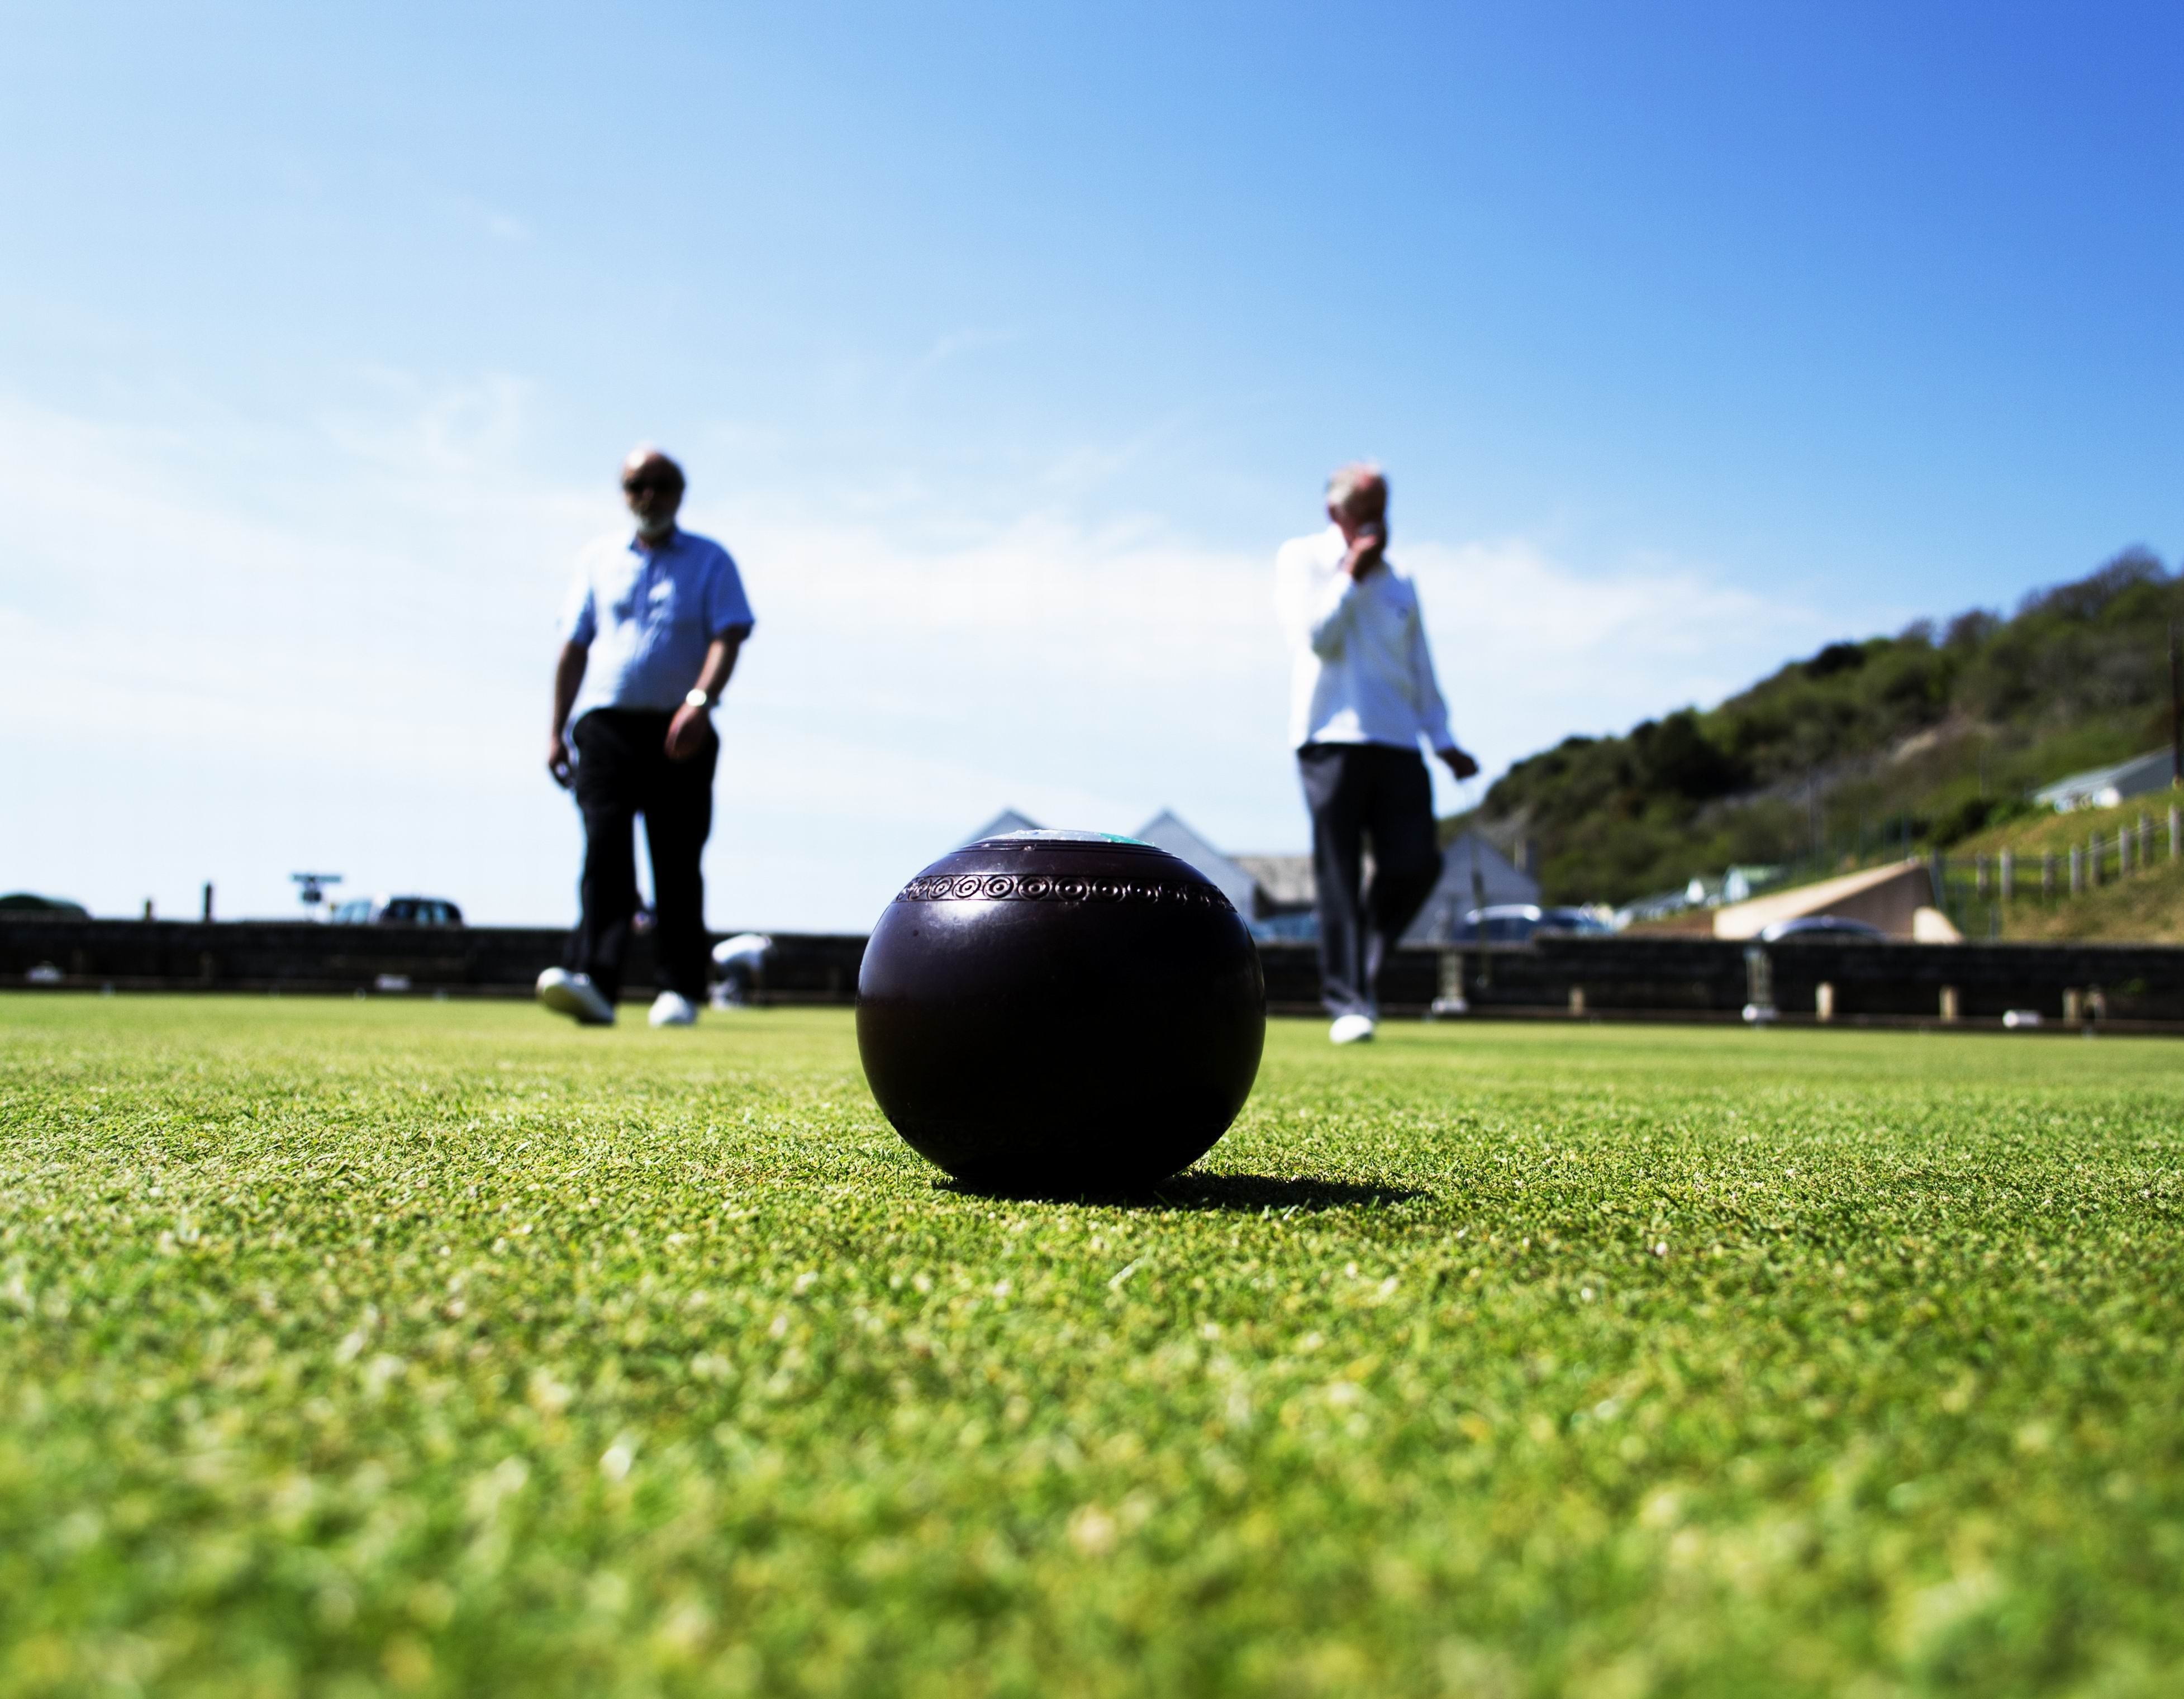 Cannington and Districts Bowling Club could be booted from premises if proposal passes council